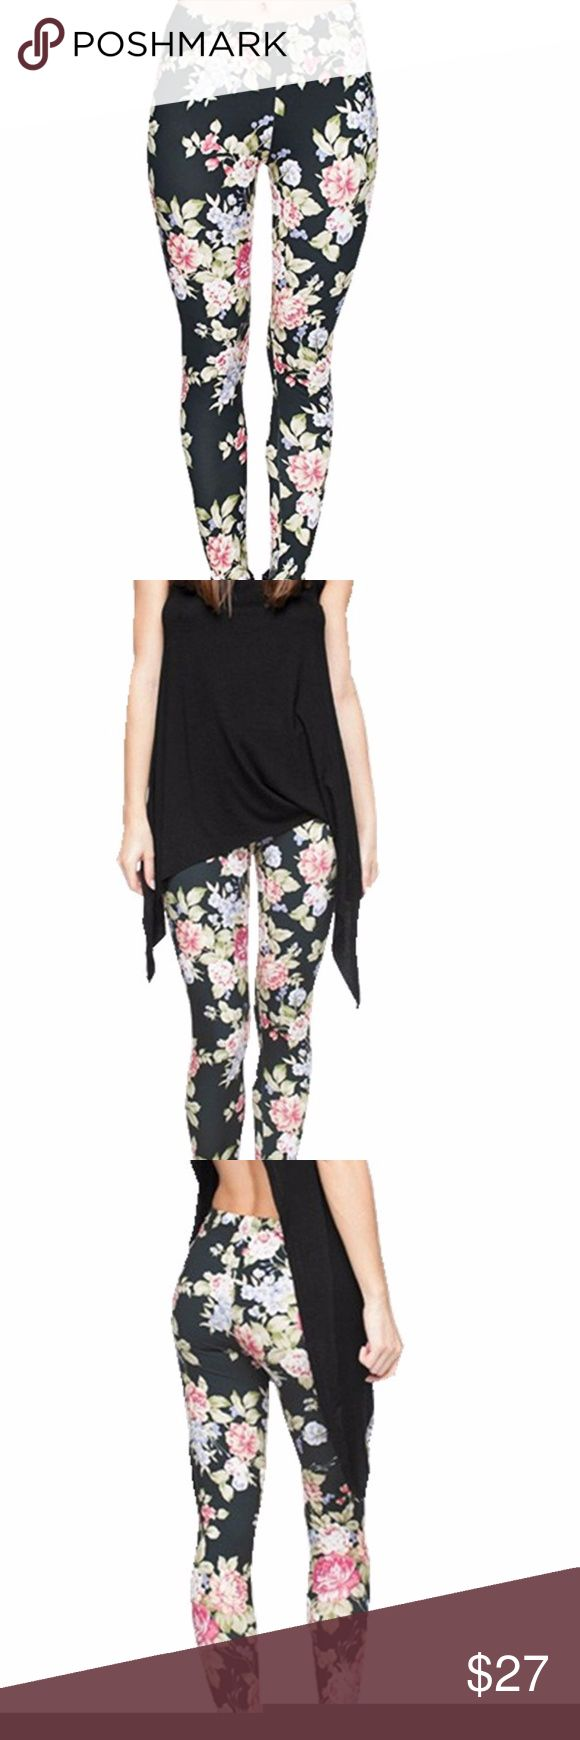 Black Leggings with Flower print Brand New leggings. The material consists of nylon and spandex, making the whole piece of leggings stretchy. Can fit thin or plump, short or tall, young or old.   One size 0-12 Pants Leggings